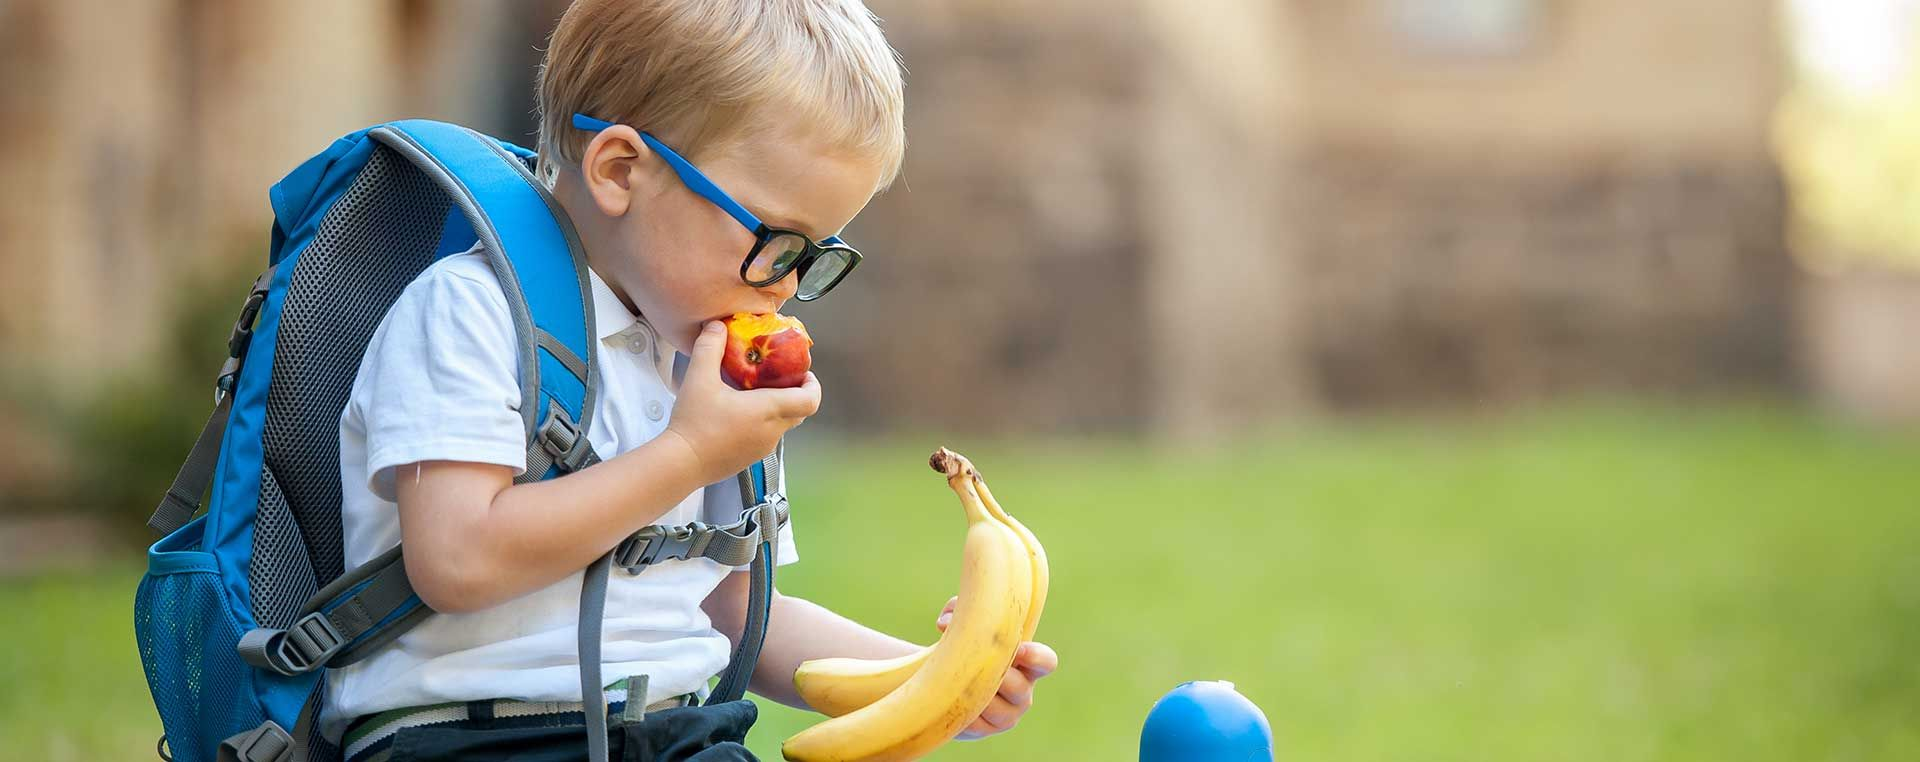 A young boy with glasses and a blue backpack is sat holding bananas and eating a nectarine.